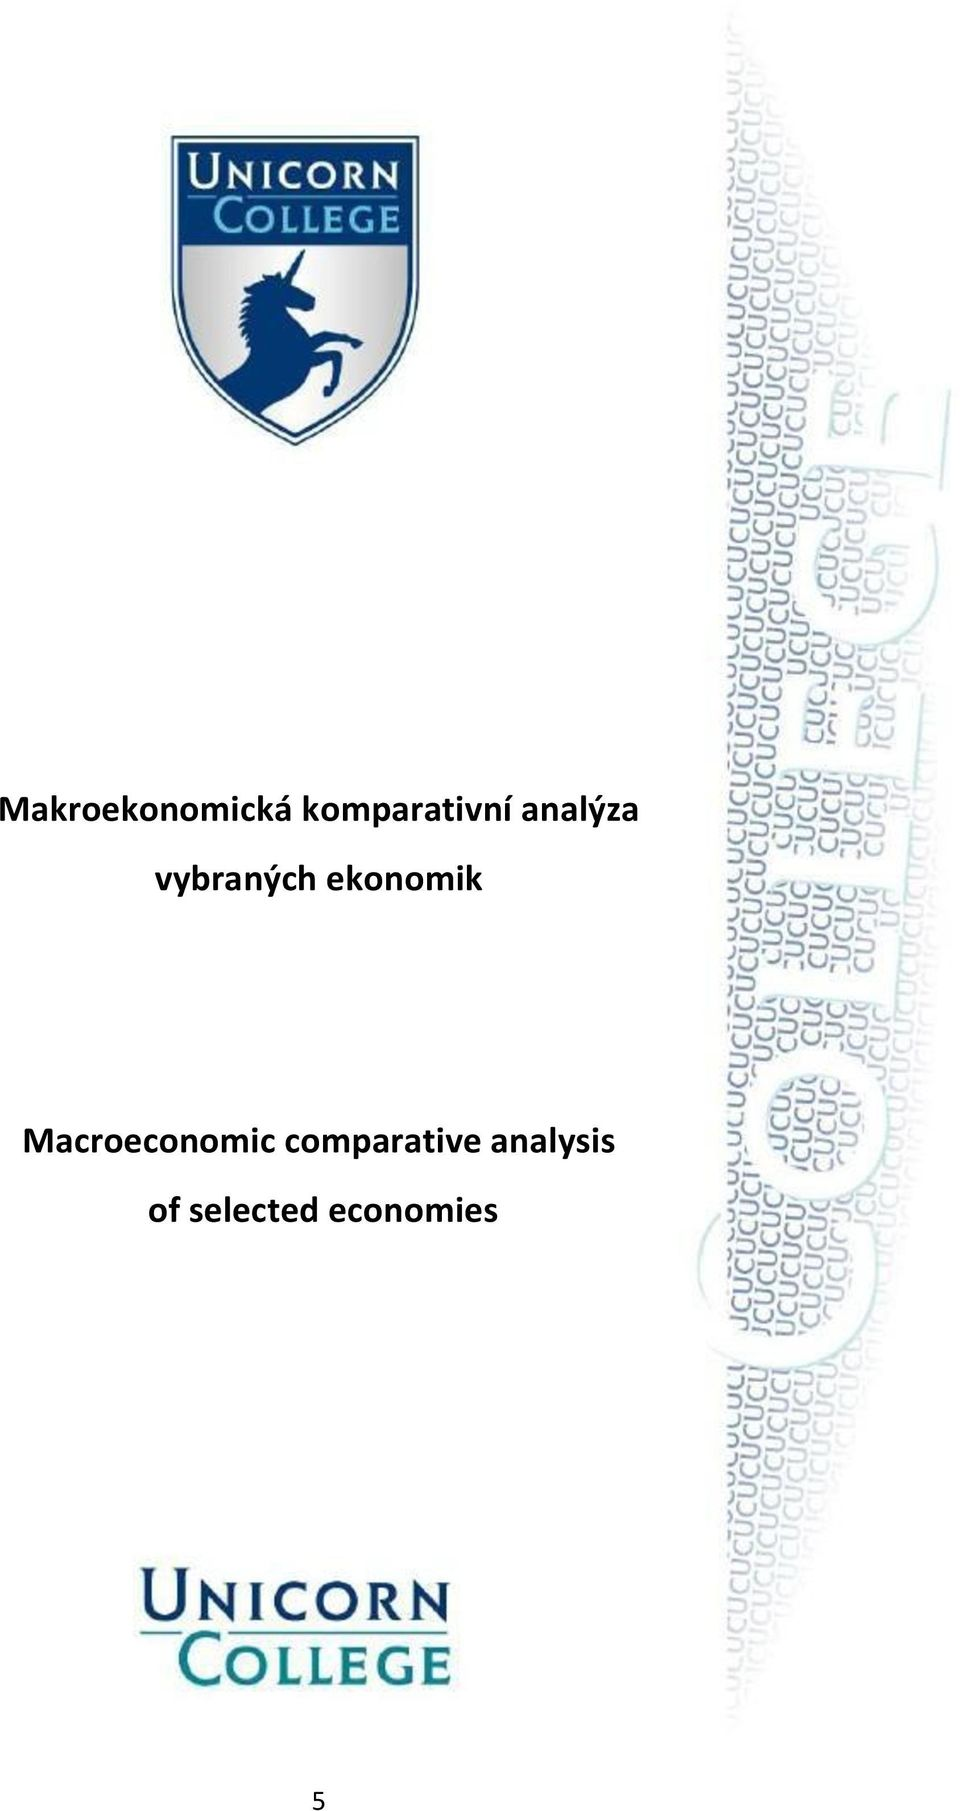 Macroeconomic comparative